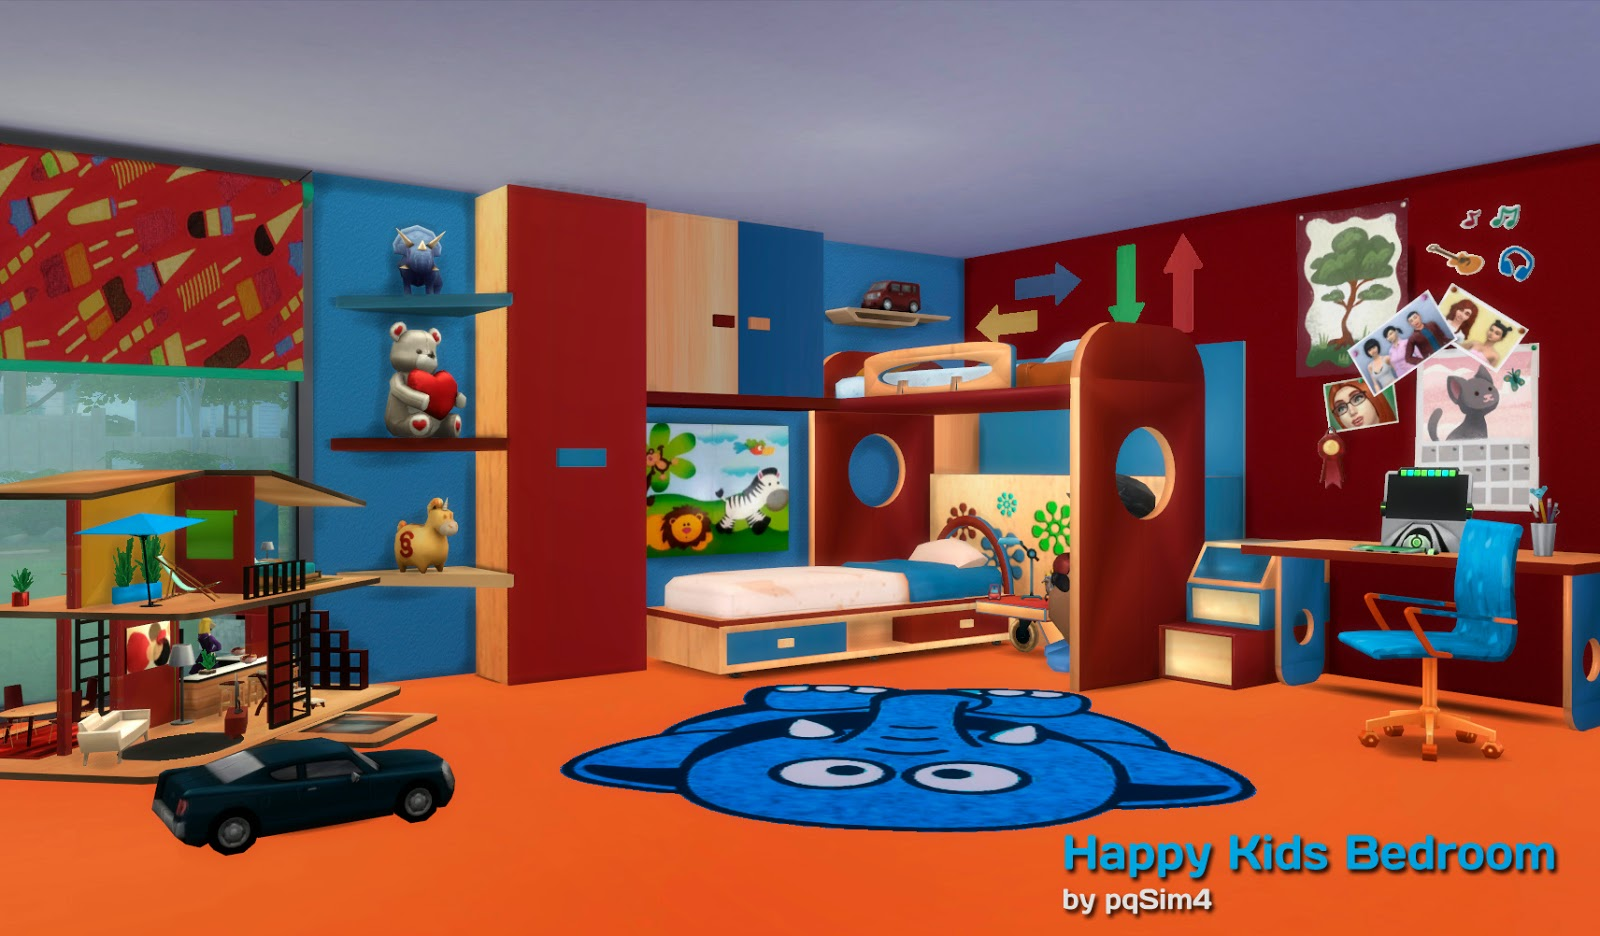 sims 4 dormitorio happy kids